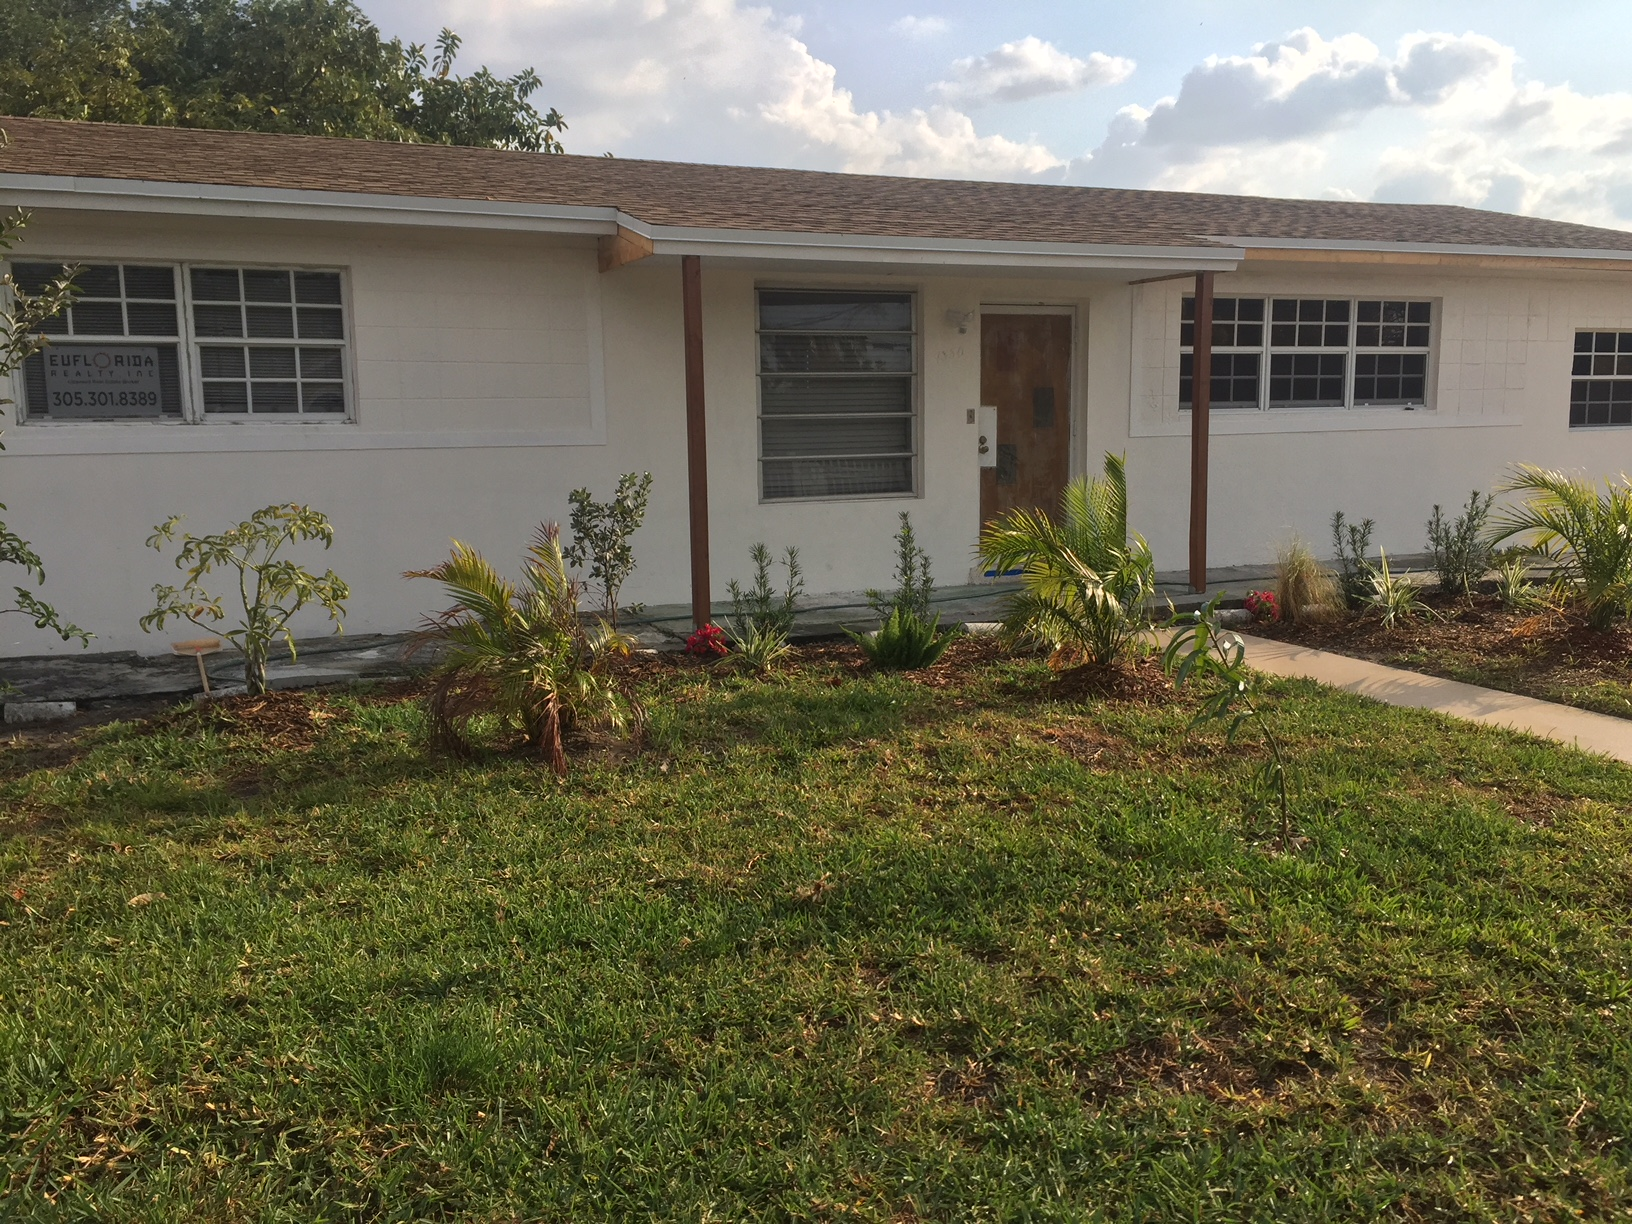 Home for sale: 1330 NW 111 ST, MIAMI, FL